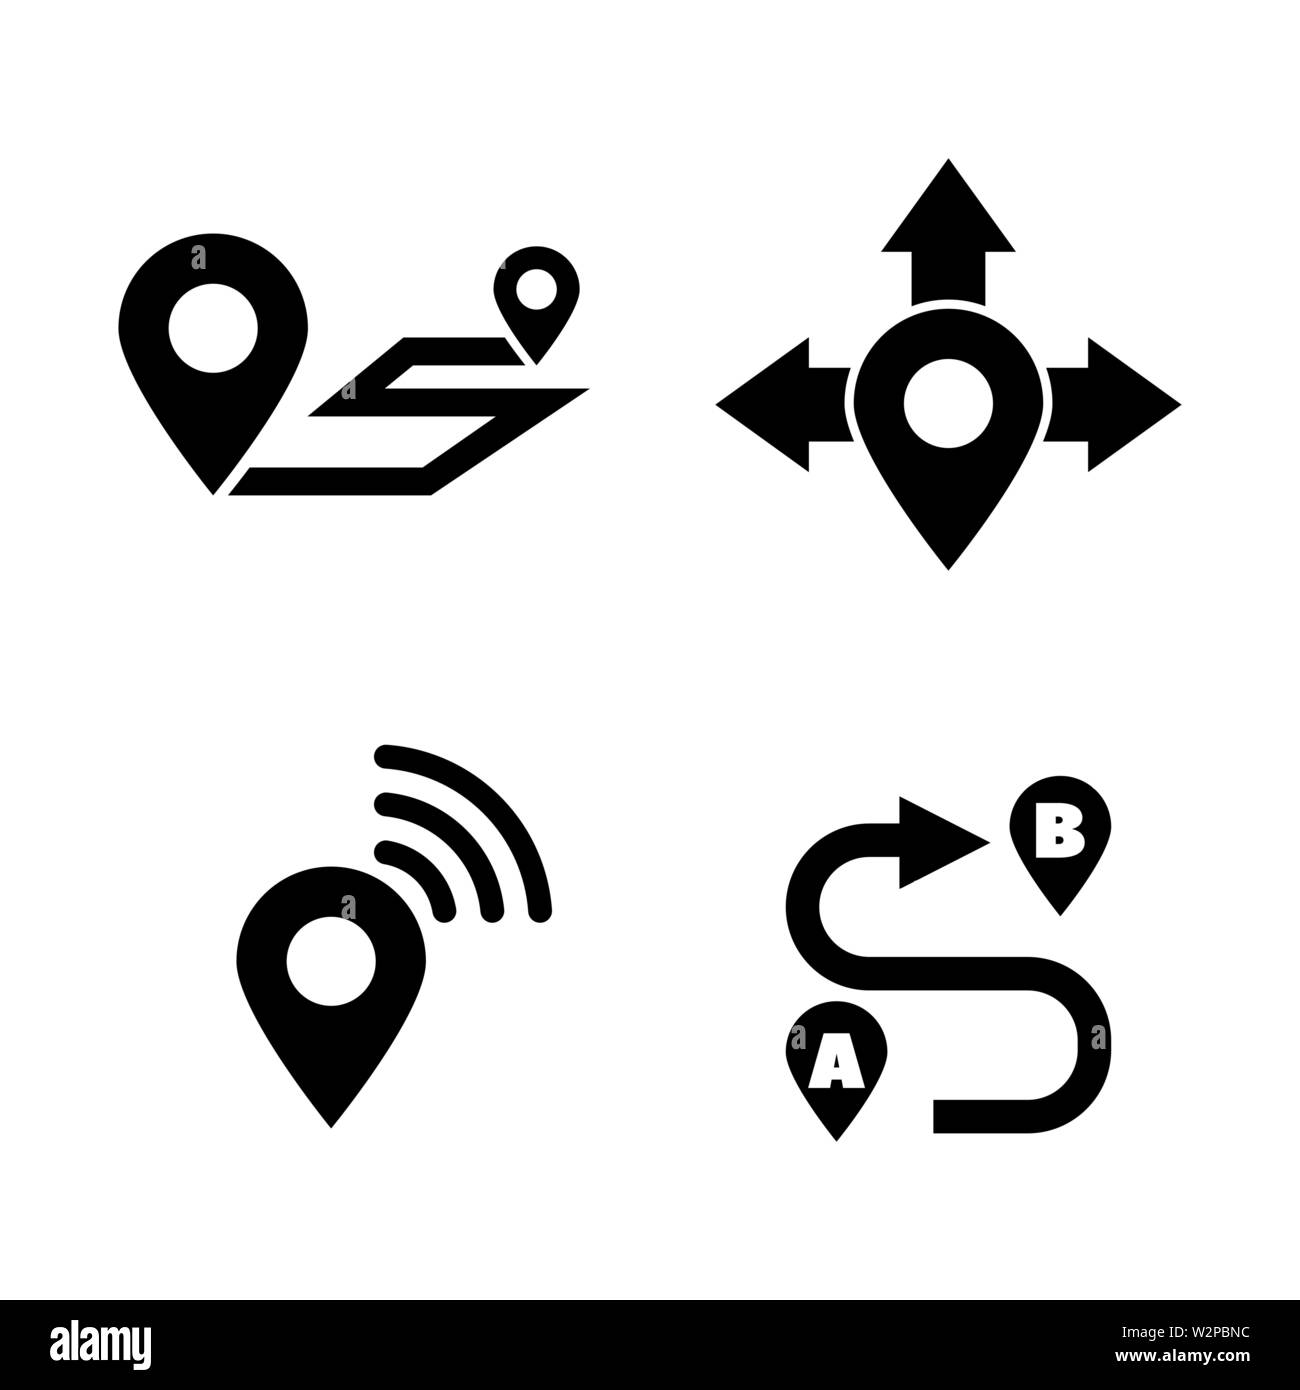 Navigation Map. Simple Related Vector Icons Set for Video, Mobile Apps, Web Sites, Print Projects and Your Design. Black Flat Illustration on White Ba - Stock Image